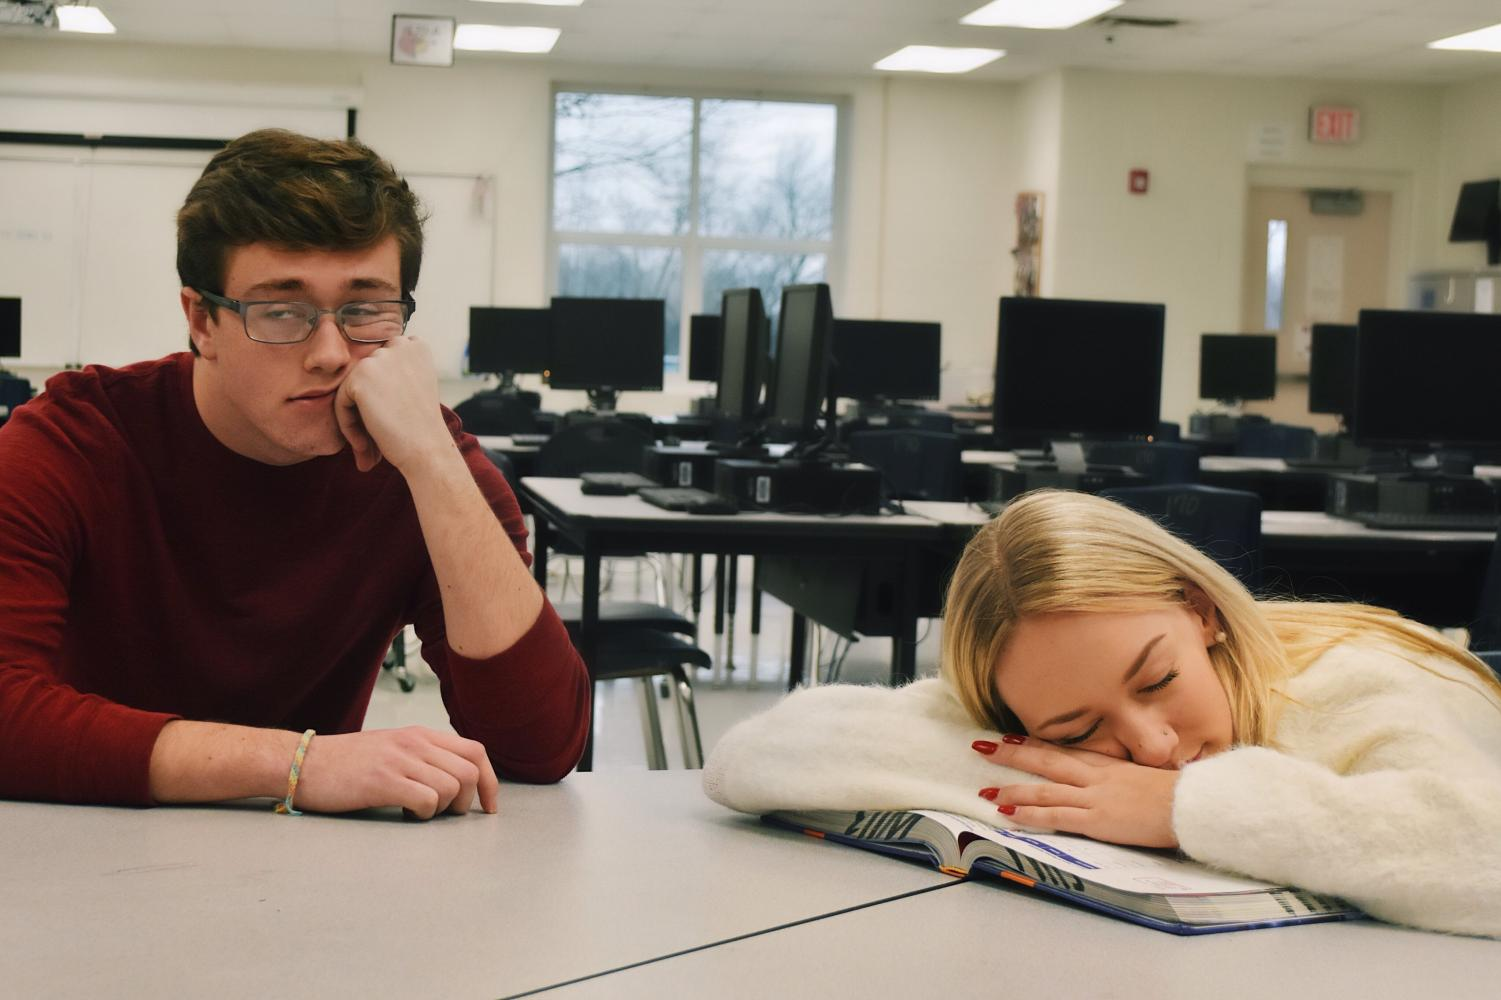 Chase Hayes and Emme Palmer were voted to have the biggest case of senioritis by their classmates this year.